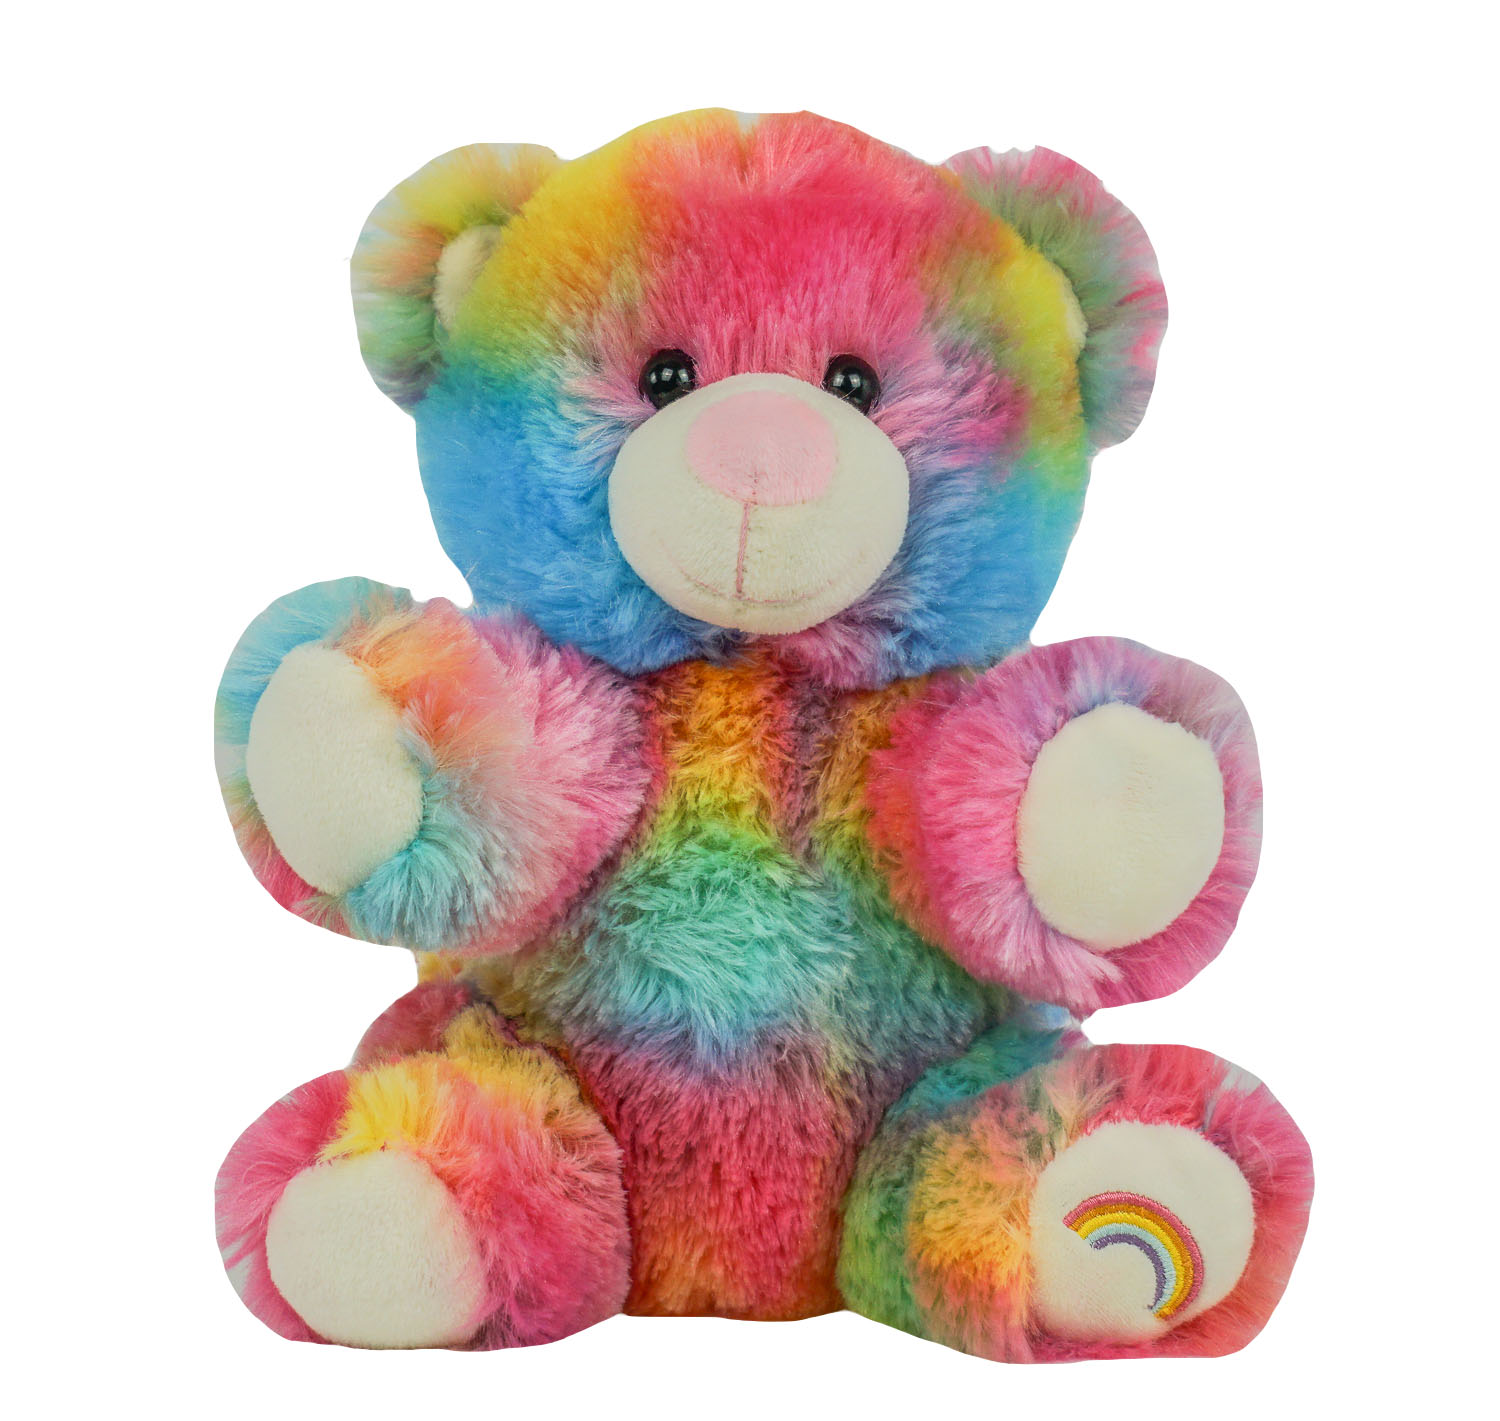 8″ Rainbow Bear – The Bear Factory